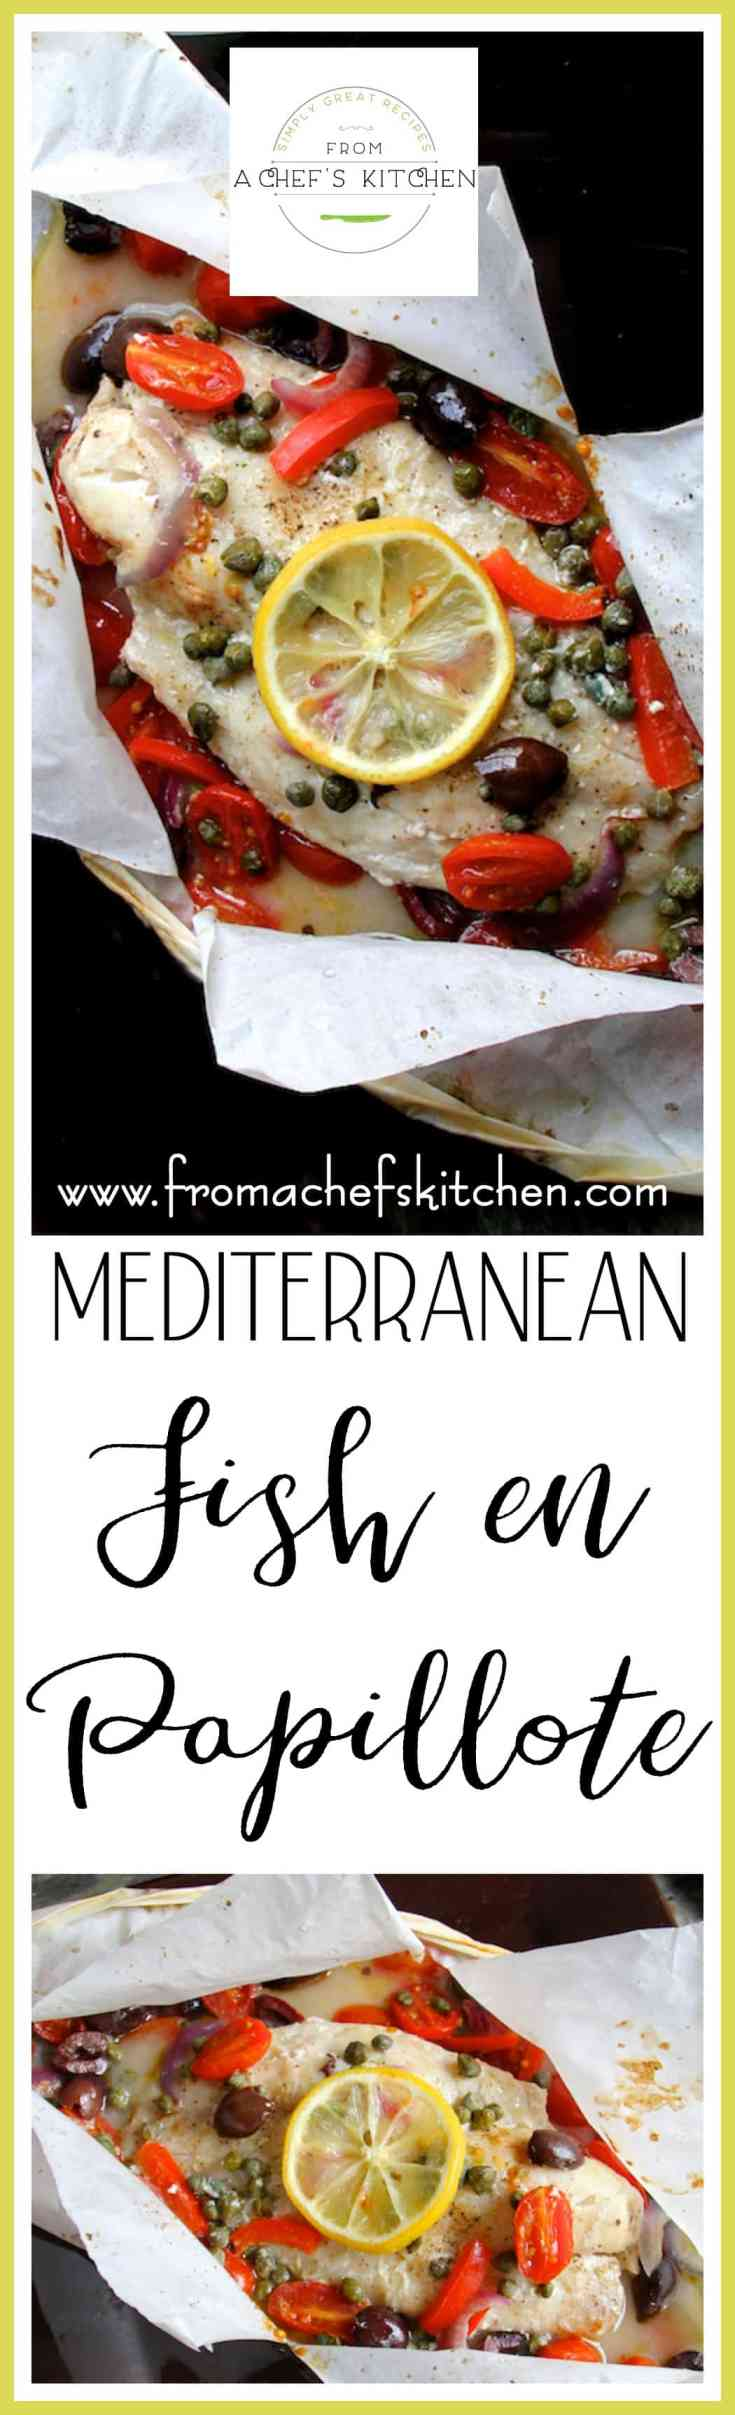 Mediterranean Fish en Papillote has all the classic flavors of that sunny region with tomatoes, olives, capers, garlic, olive oil, wine and lemon--all wrapped up in parchment paper parcels! #mediterranean #fish #fishrecipes #healthyfishrecipes #lowcarb #lowcarbrecipes